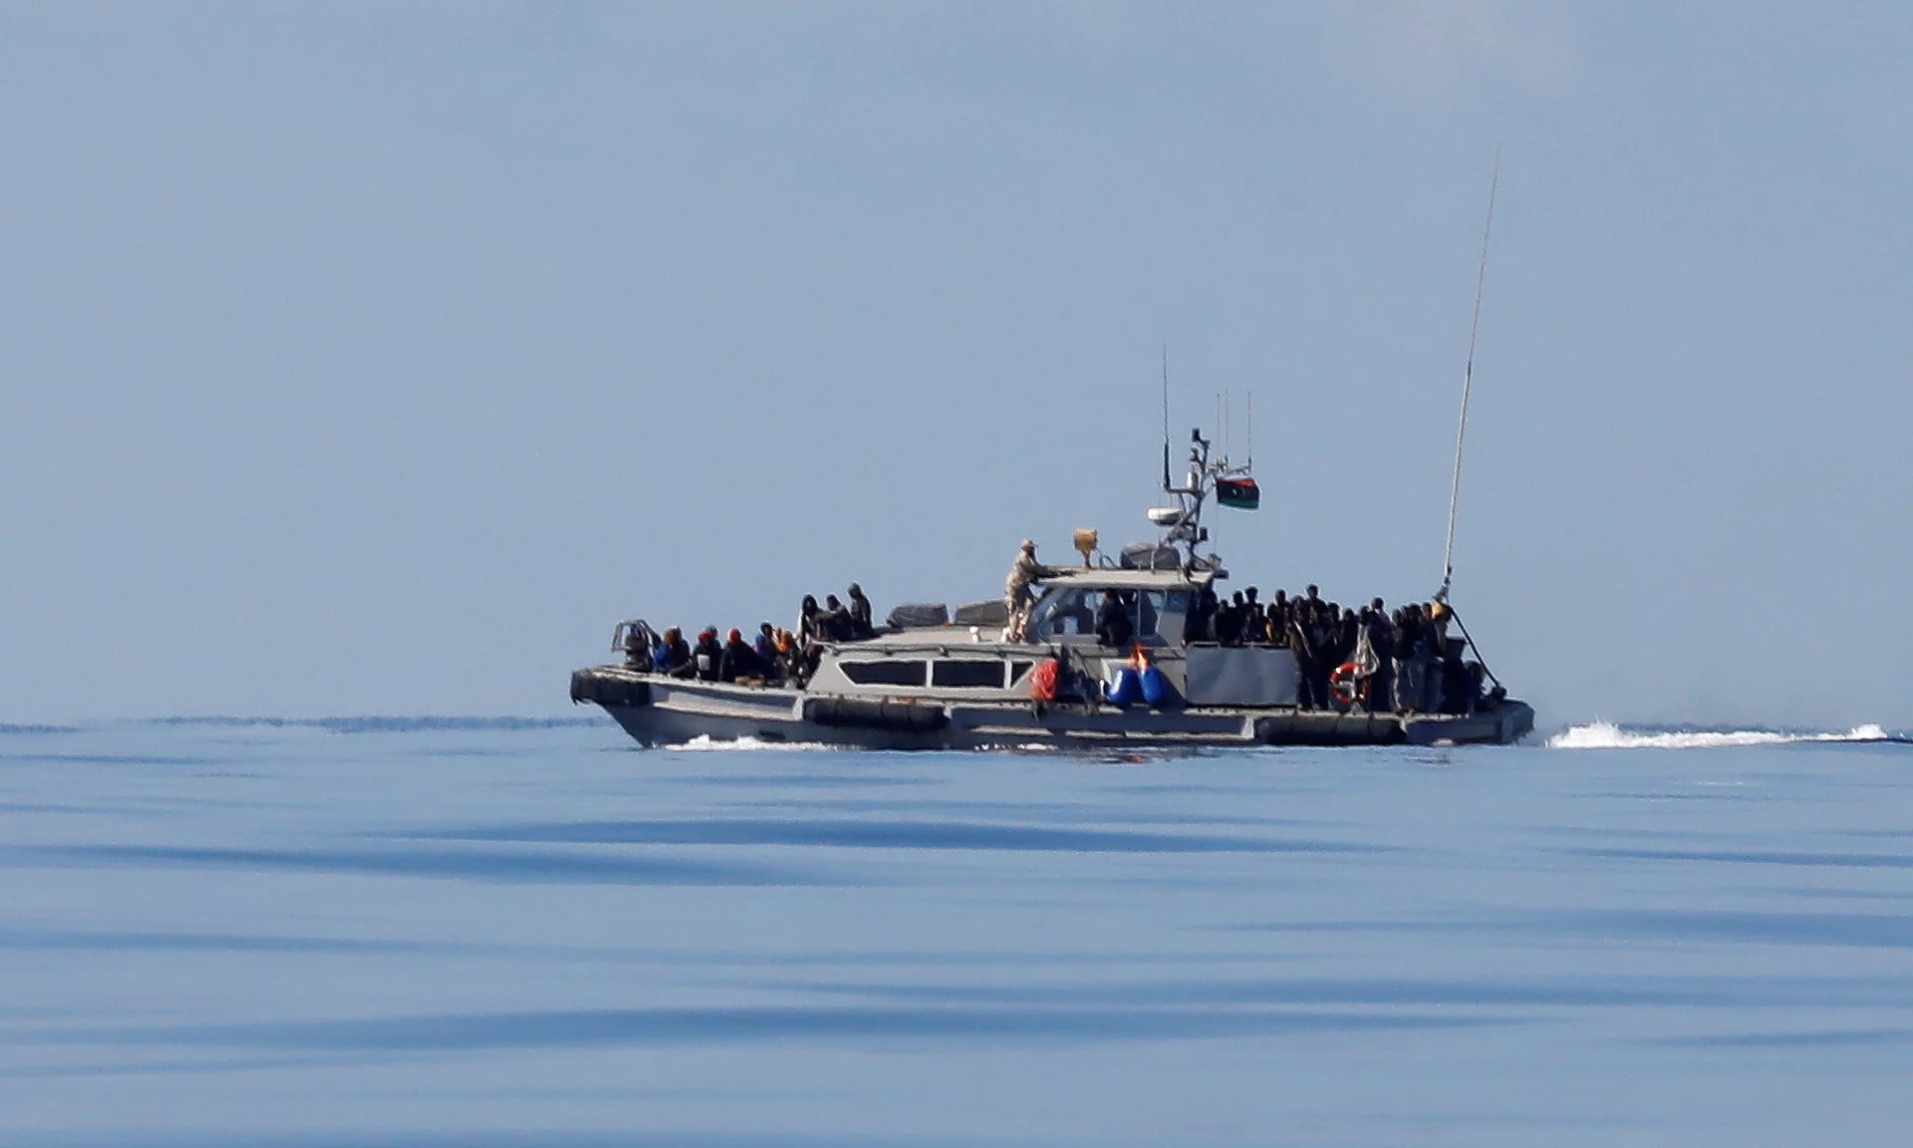 A Libyan coastguard vessel during a rescue operation last month.